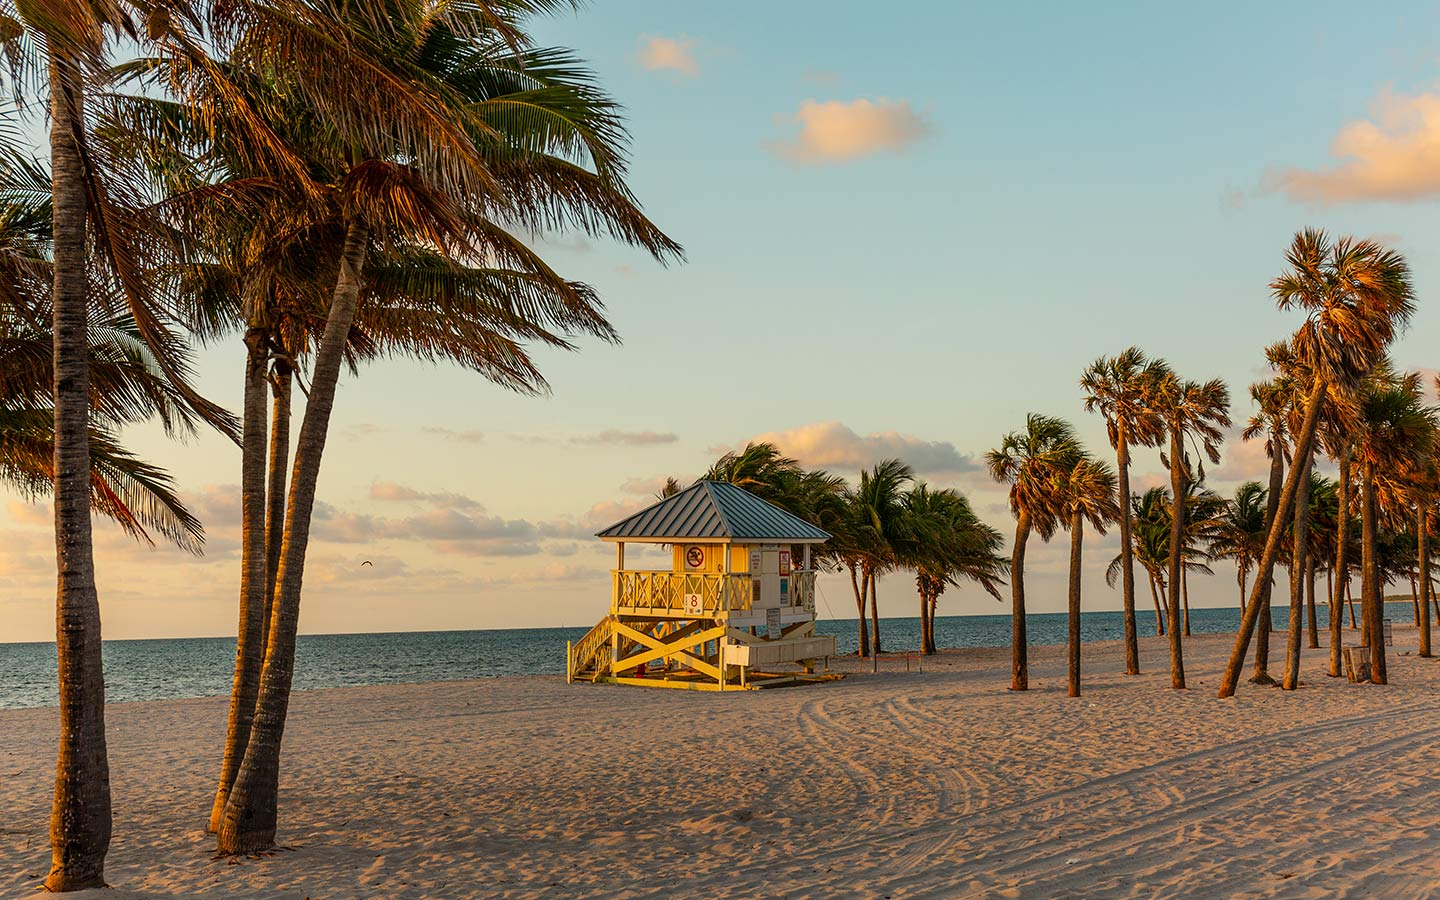 Key Biscayne: A Natural Island Paradise